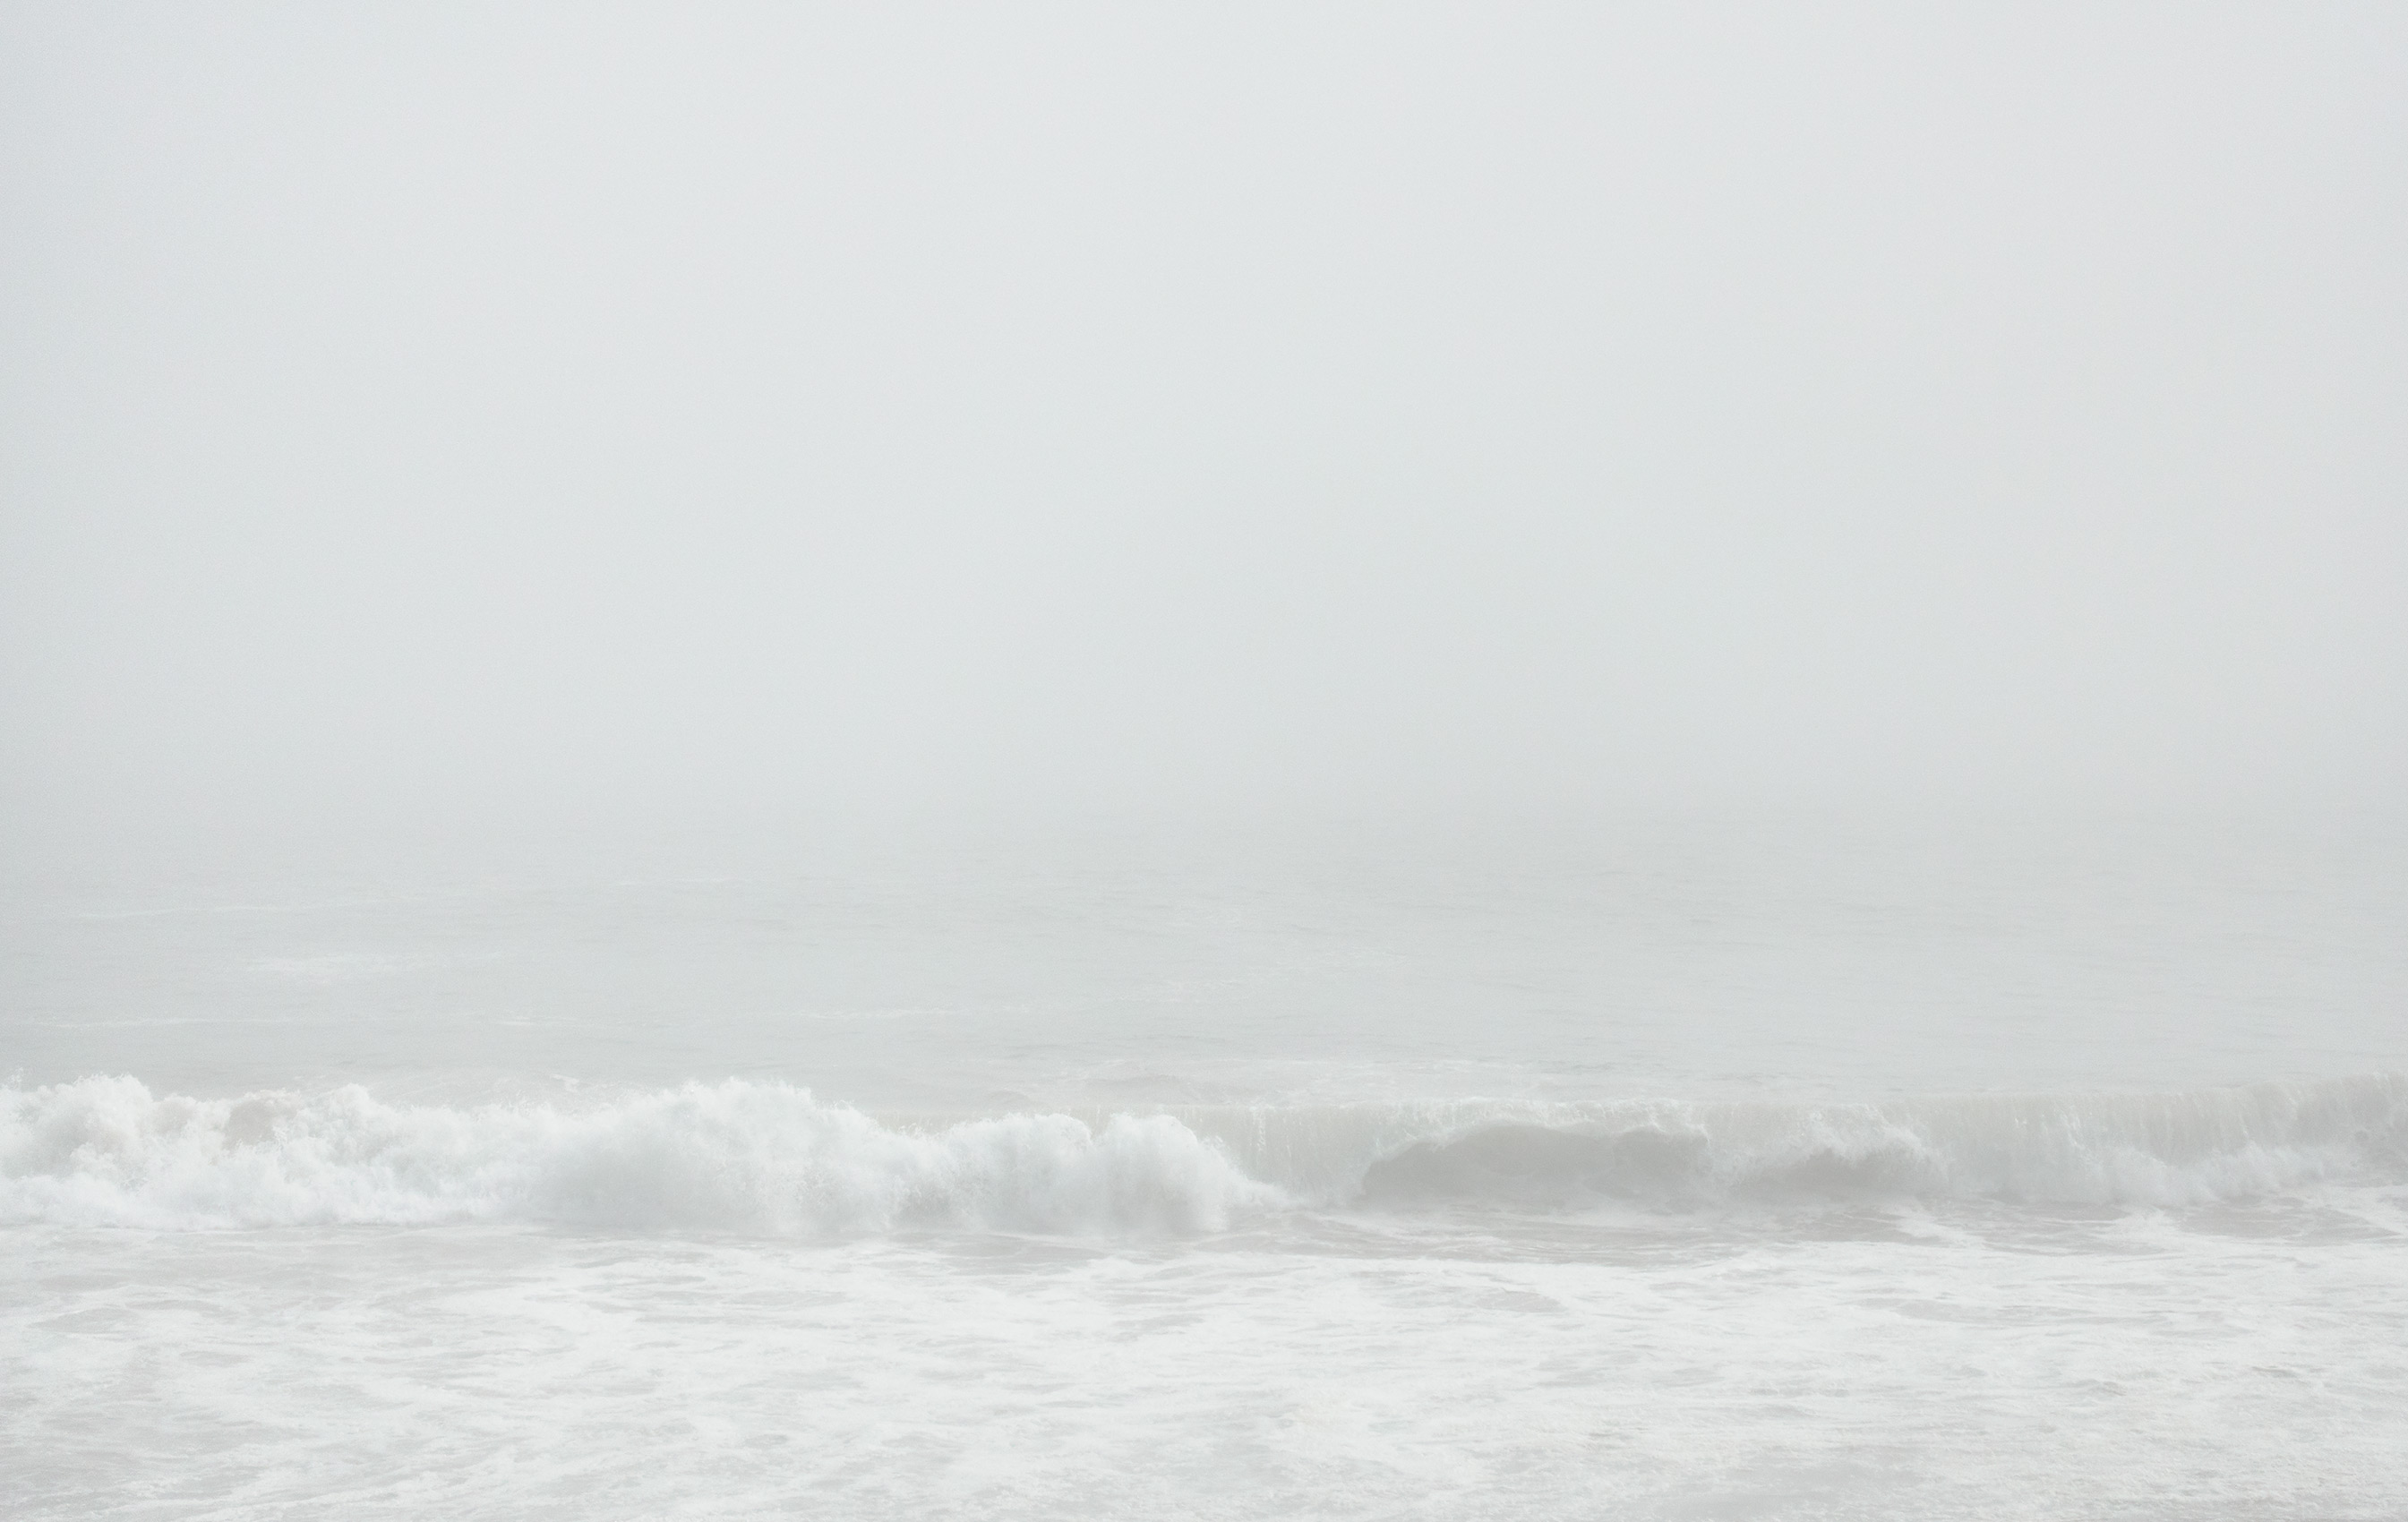 SONY-0638-waves-in-fog